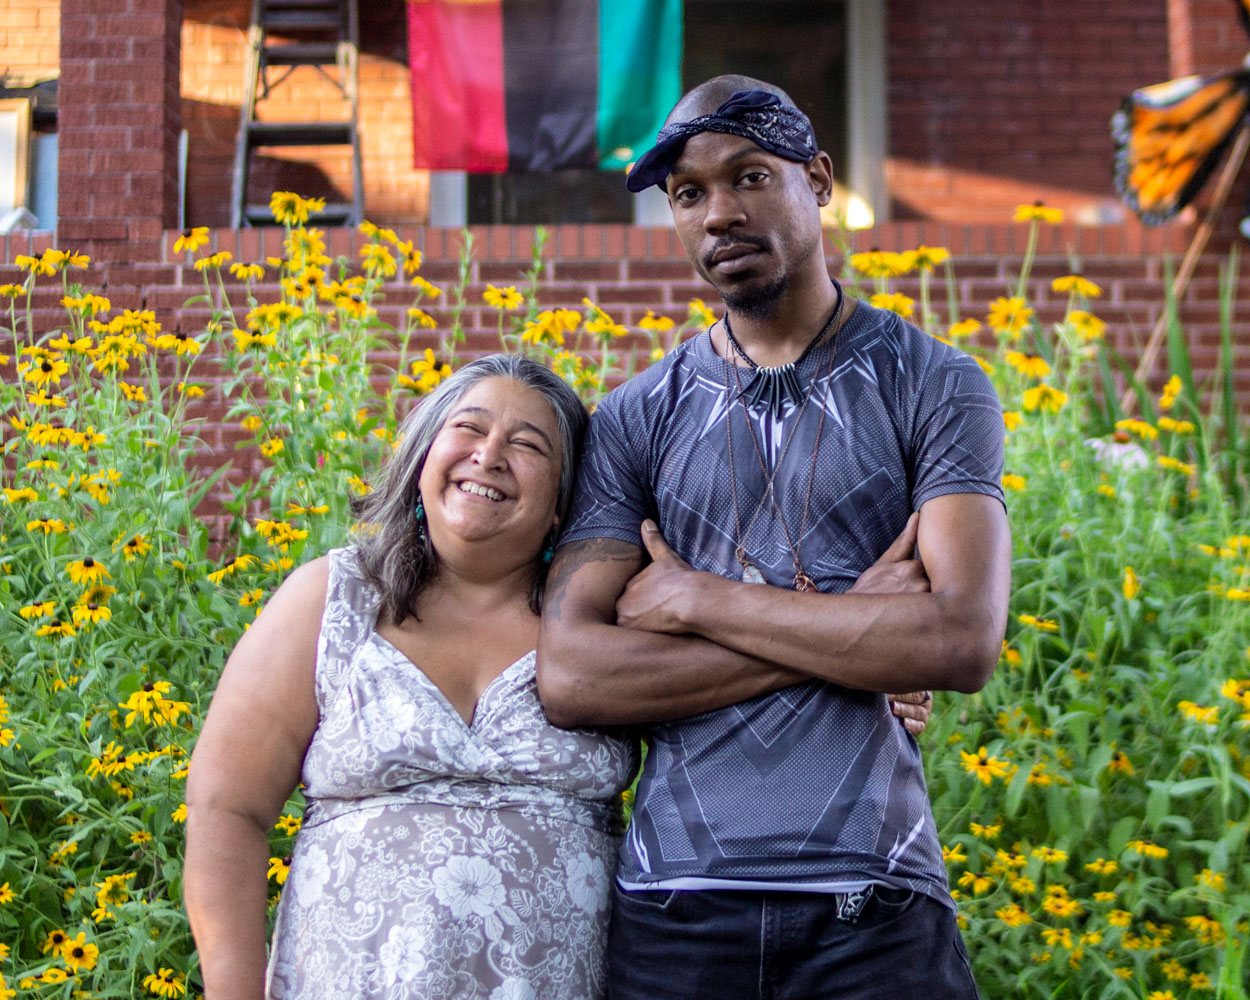 Caption: Elizabeth Vega and Jamell Spann at their StoryCorps interview in St. Louis, Missouri on June 27, 2019. , Credit: Dupe Oyebolu for StoryCorps